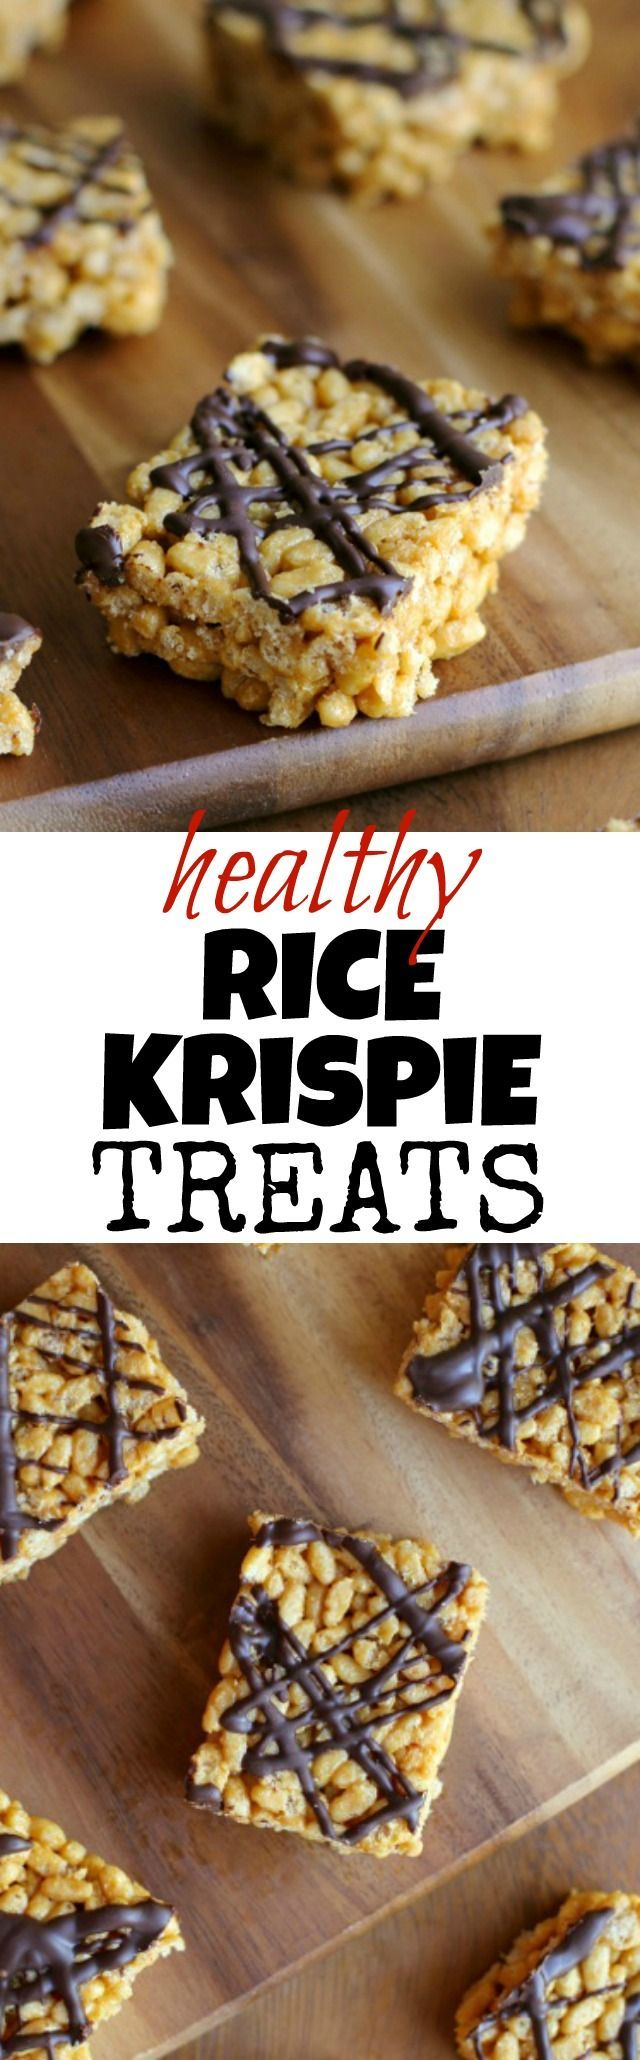 Healthy Rice Krispie Treats - this childhood favourite is made with NO marshmallows or butter, but tastes just as delicious as the original | http://runningwithspoons.com #glutenfree #vegan #snack #recipe